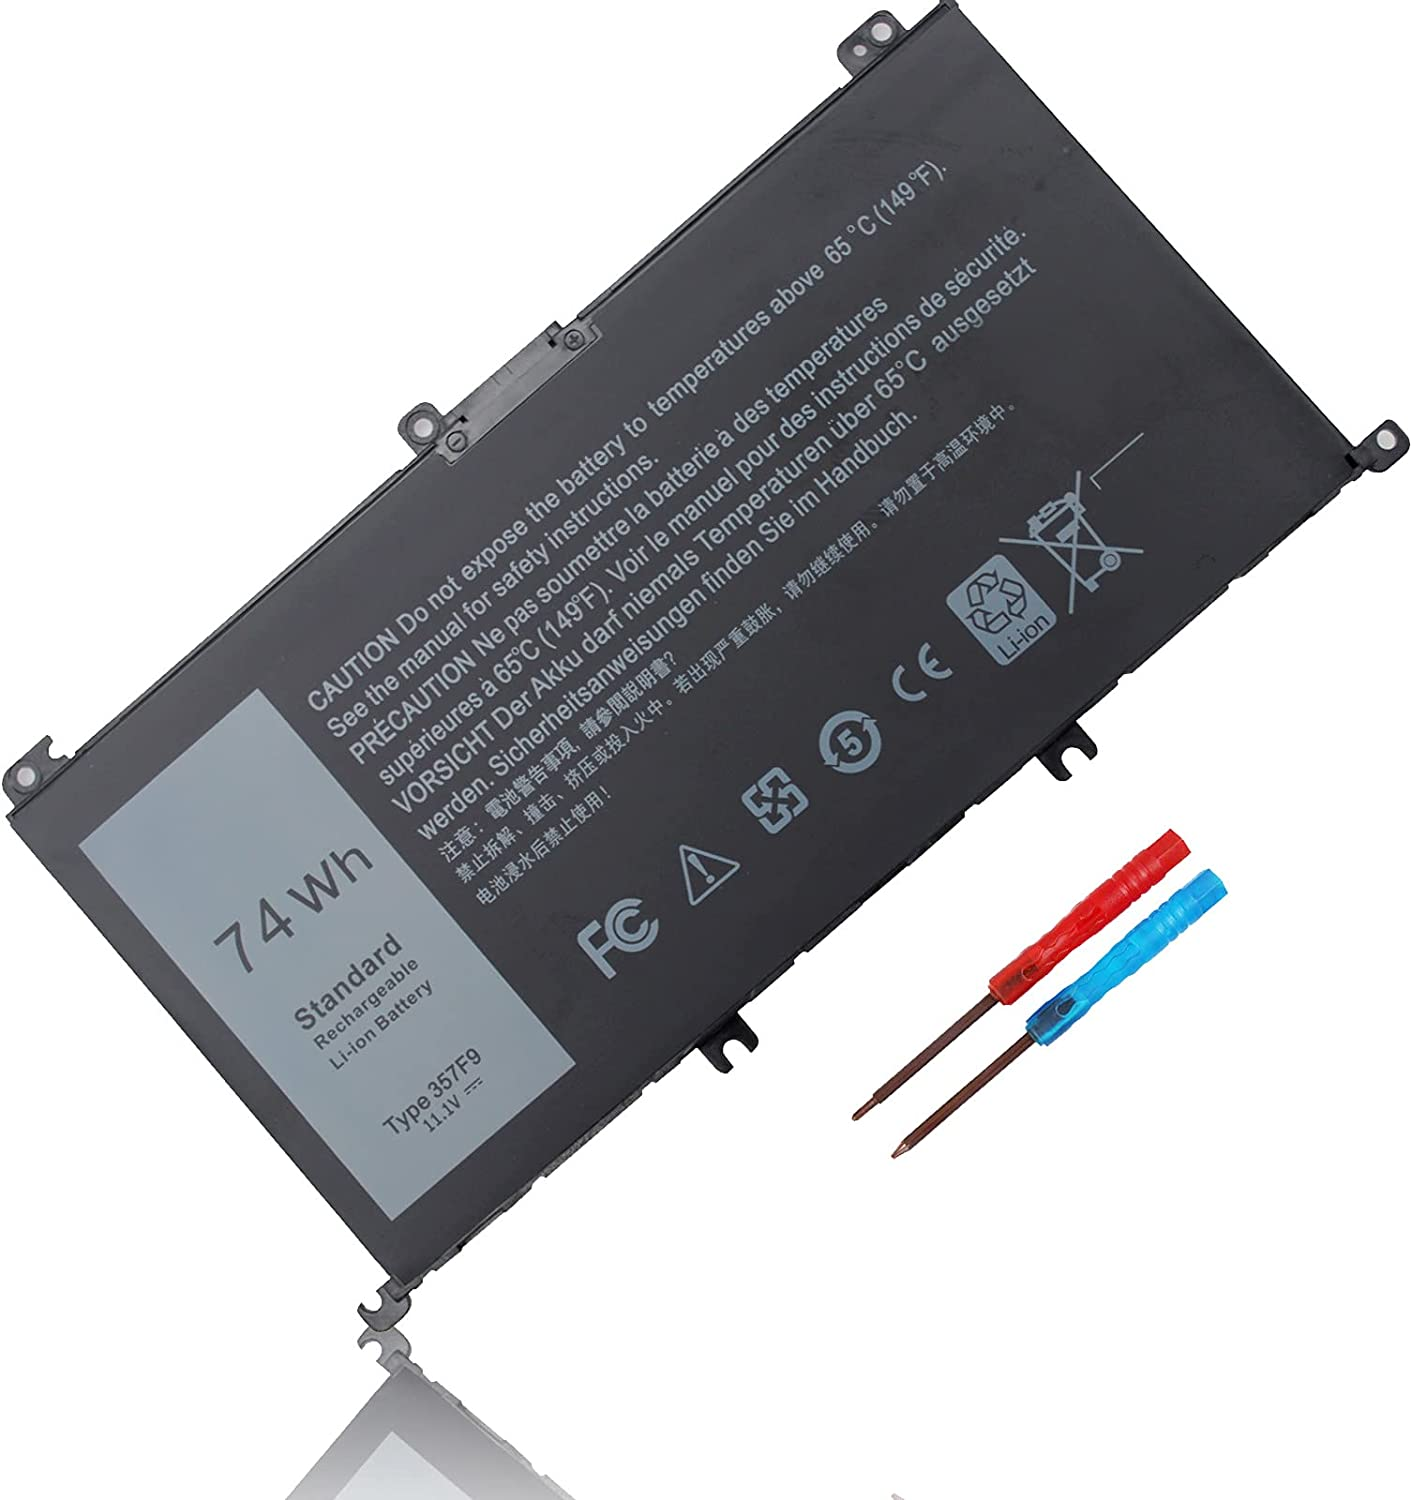 74WH Type 357F9 71JF4 11.4V Battery for Dell Inspiron 15 7000 Gaming 15 7559 i7559 7557 i7557 5577 i5577 5576 7566 7567 i7559-2512blk i7559-5012gry Series P65F P65F001 P57F P57F003 071jf4 0gfj6